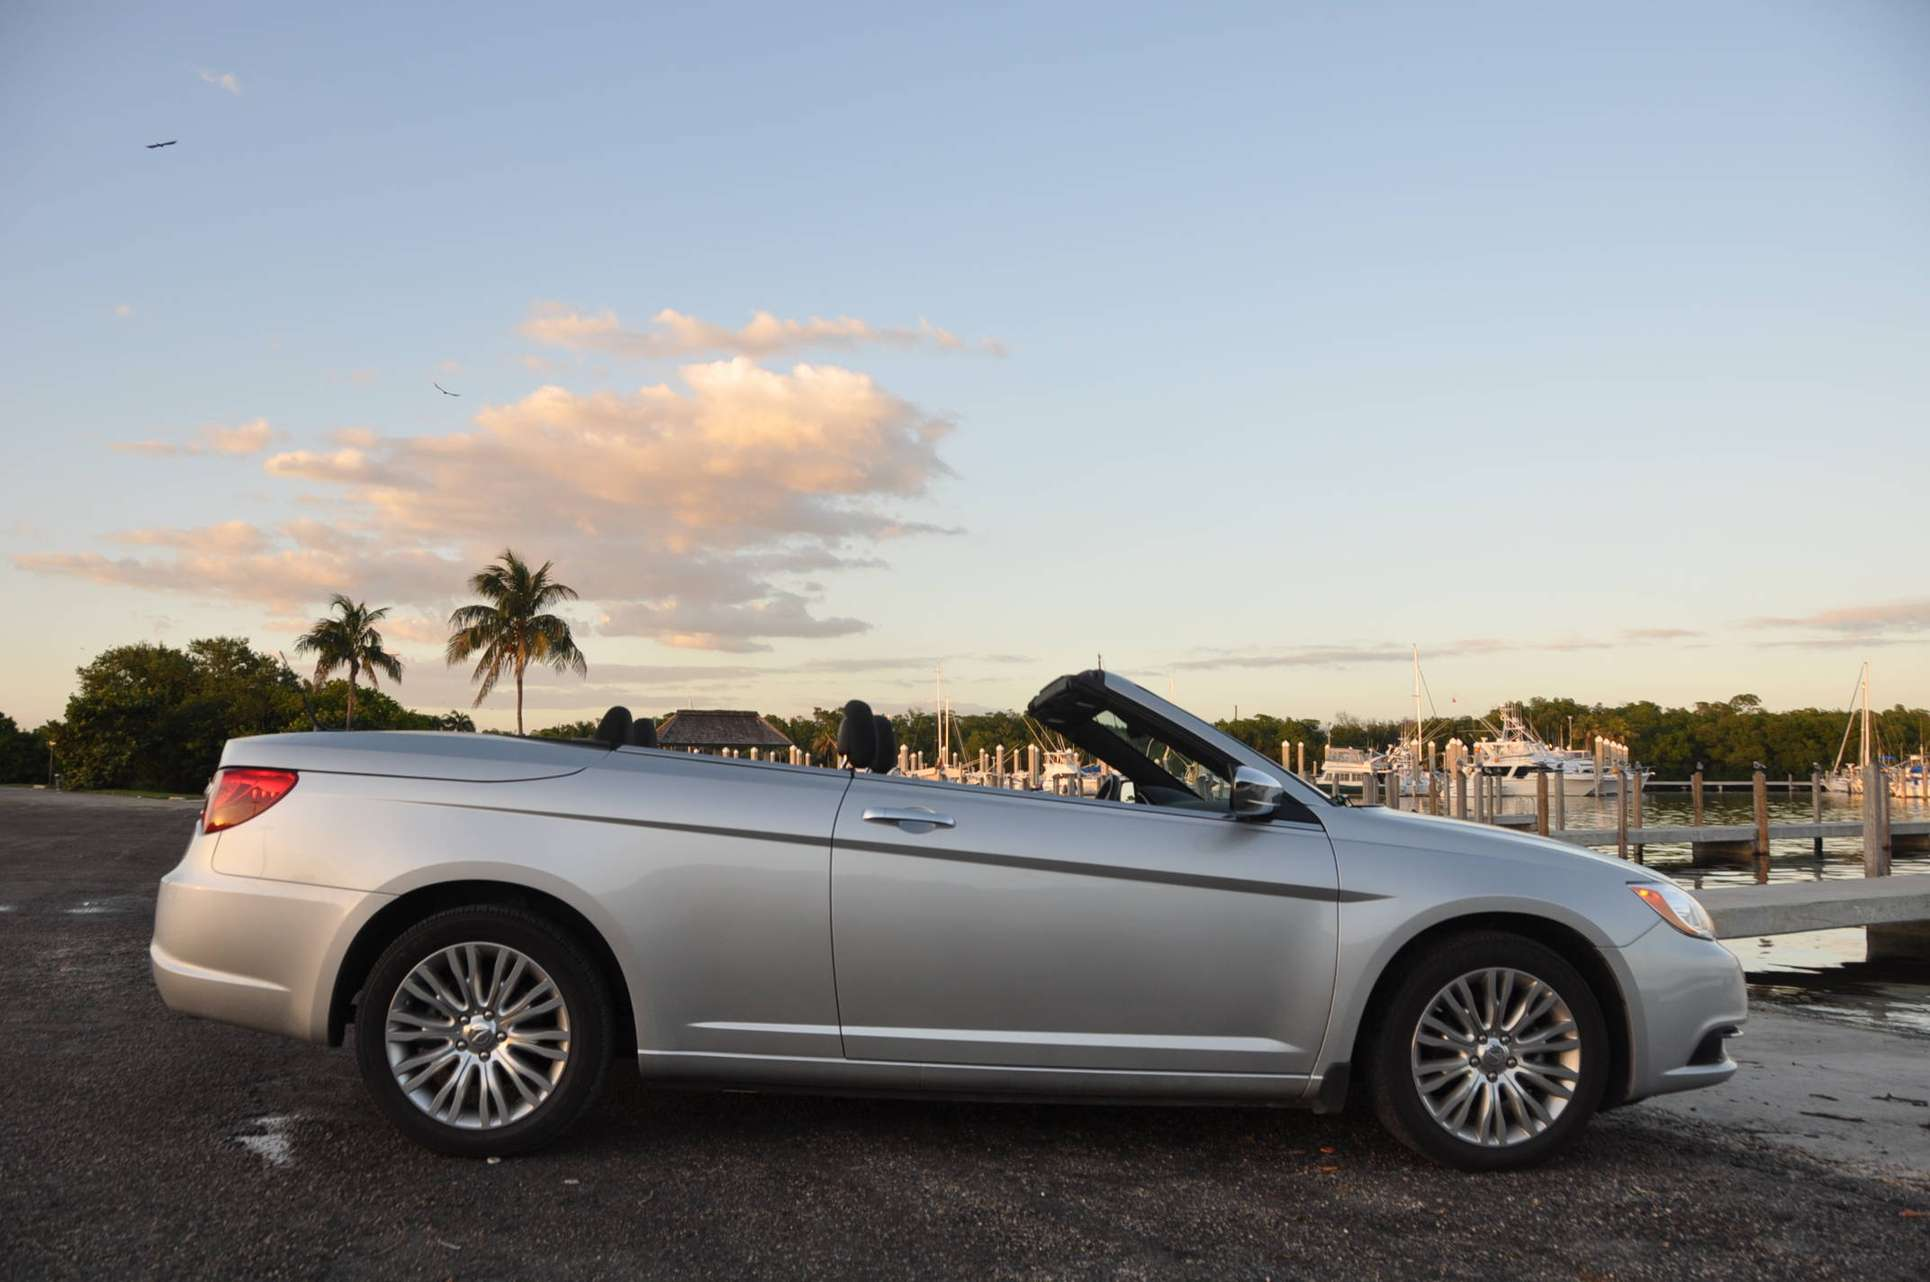 Chrysler 200 Convertible #8693086